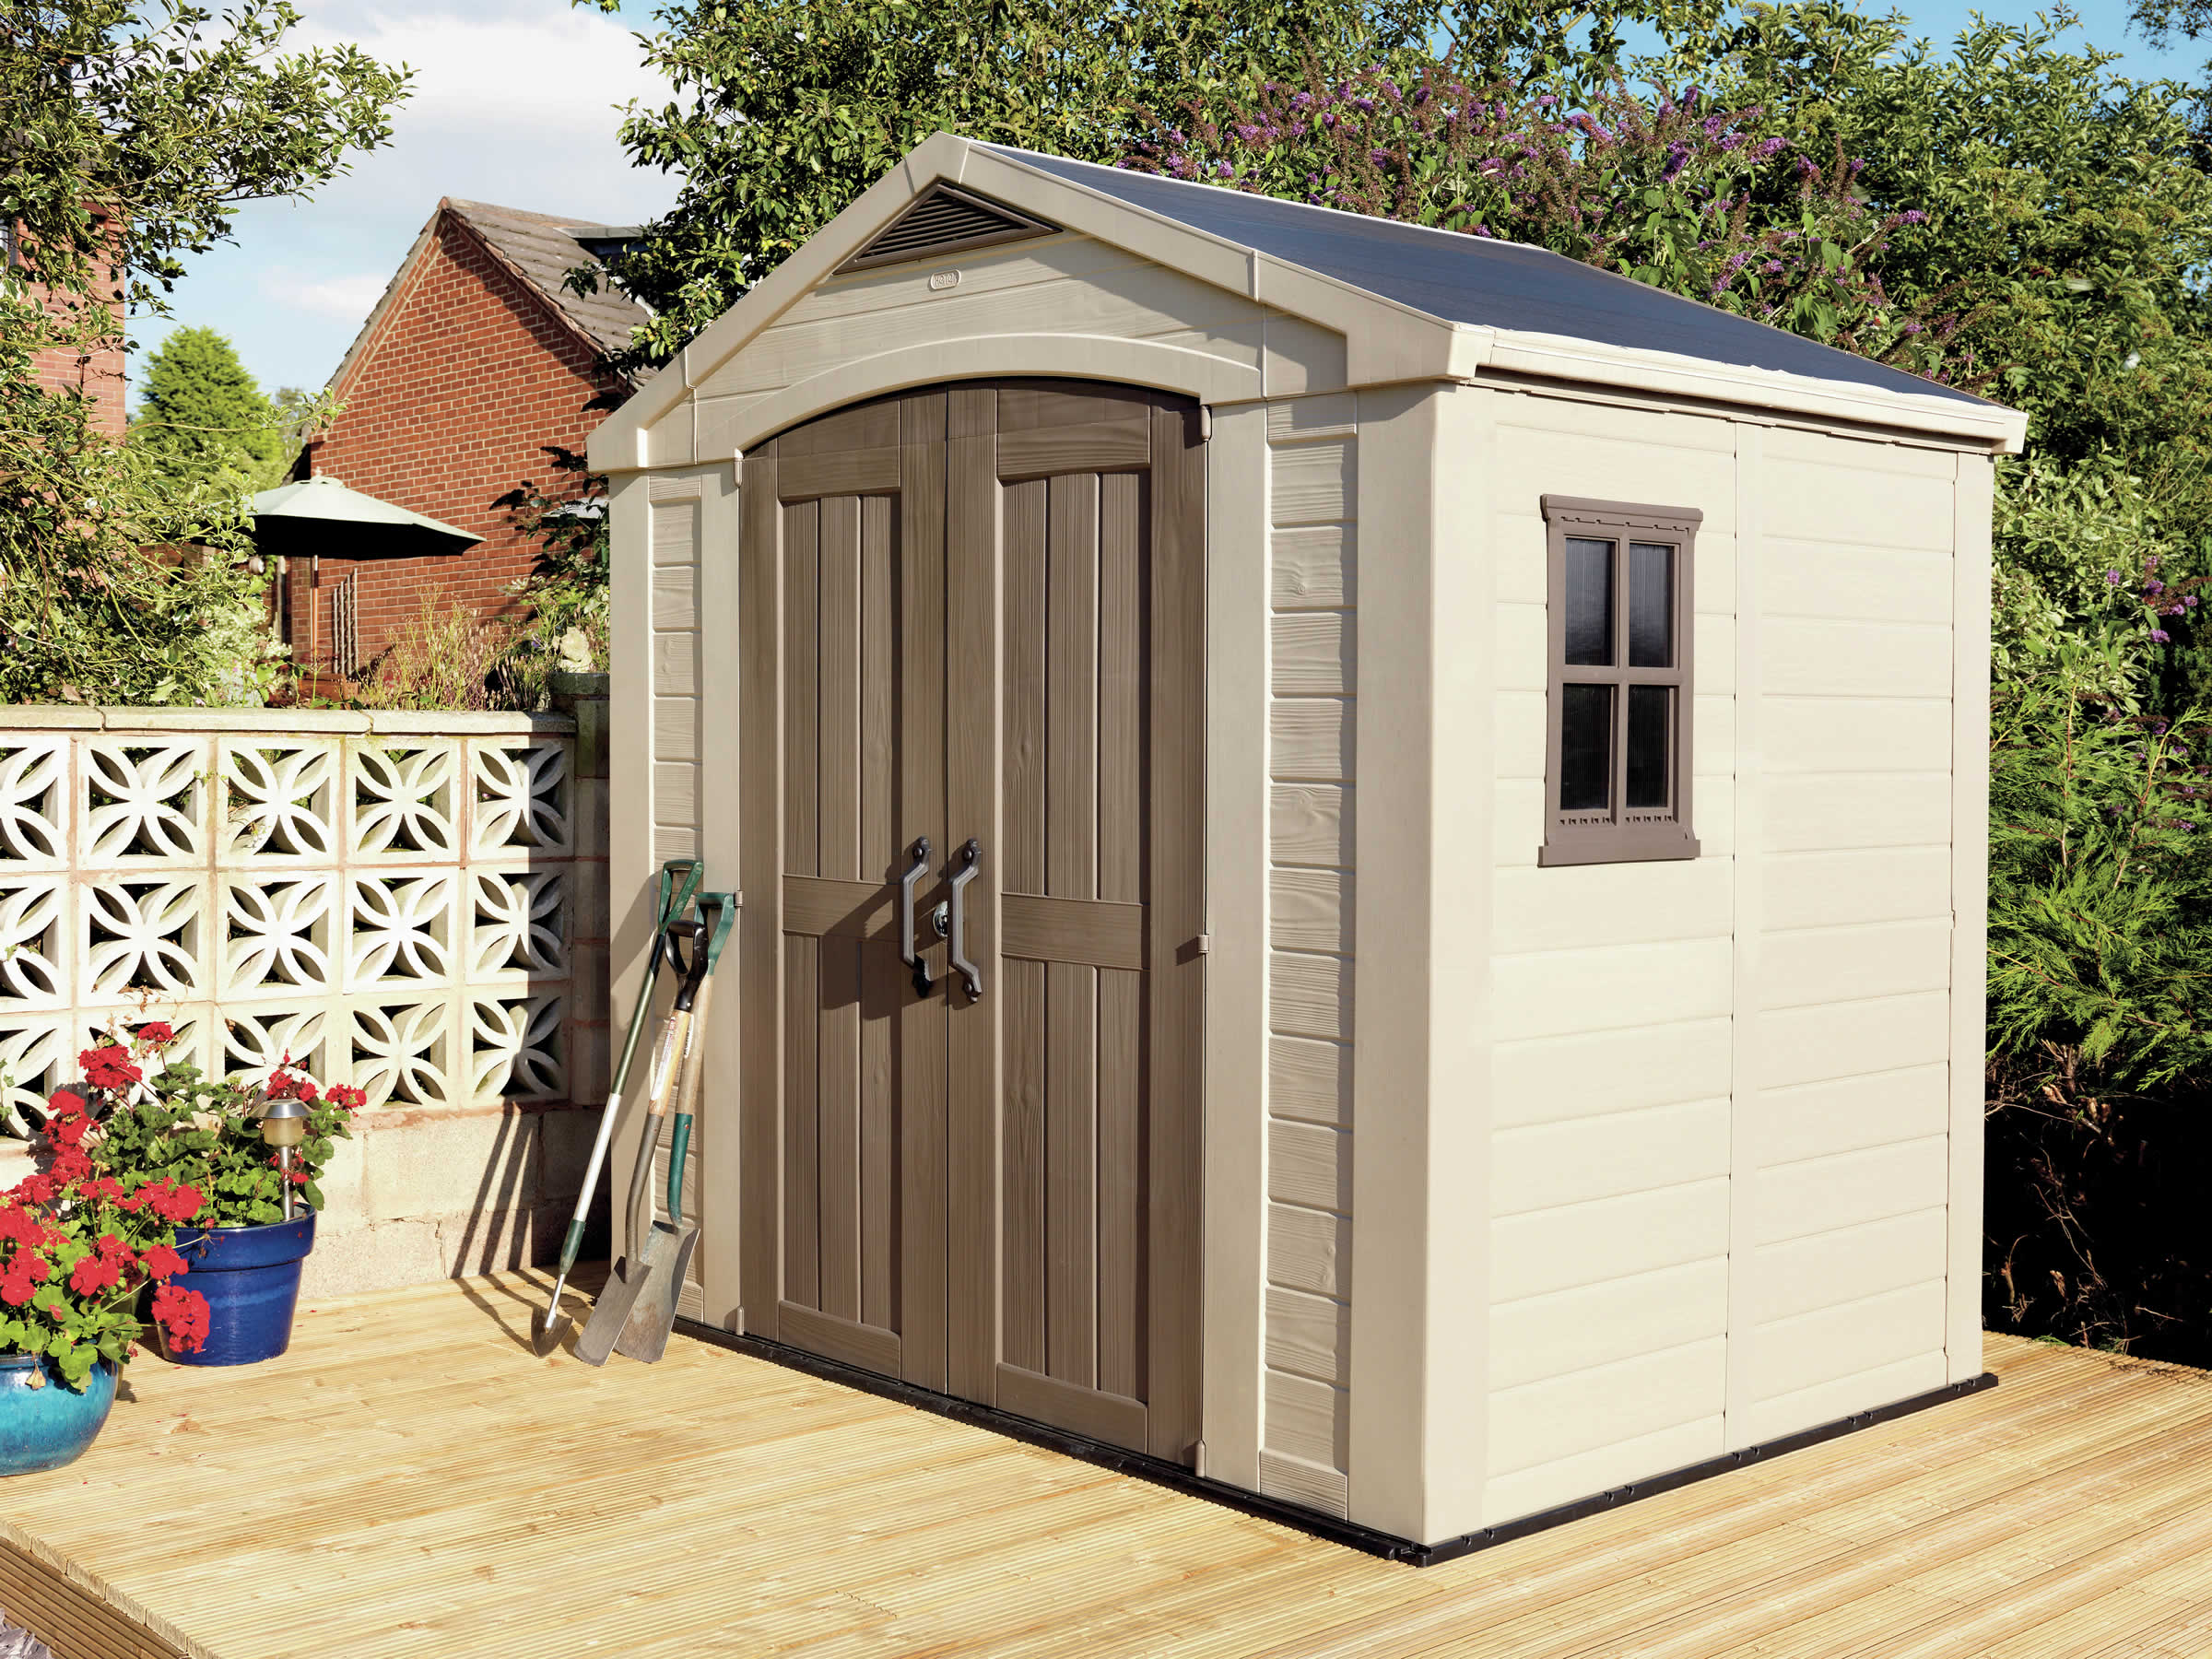 living today for outdoor sheds zoom product garden sale grand chalet shed storage